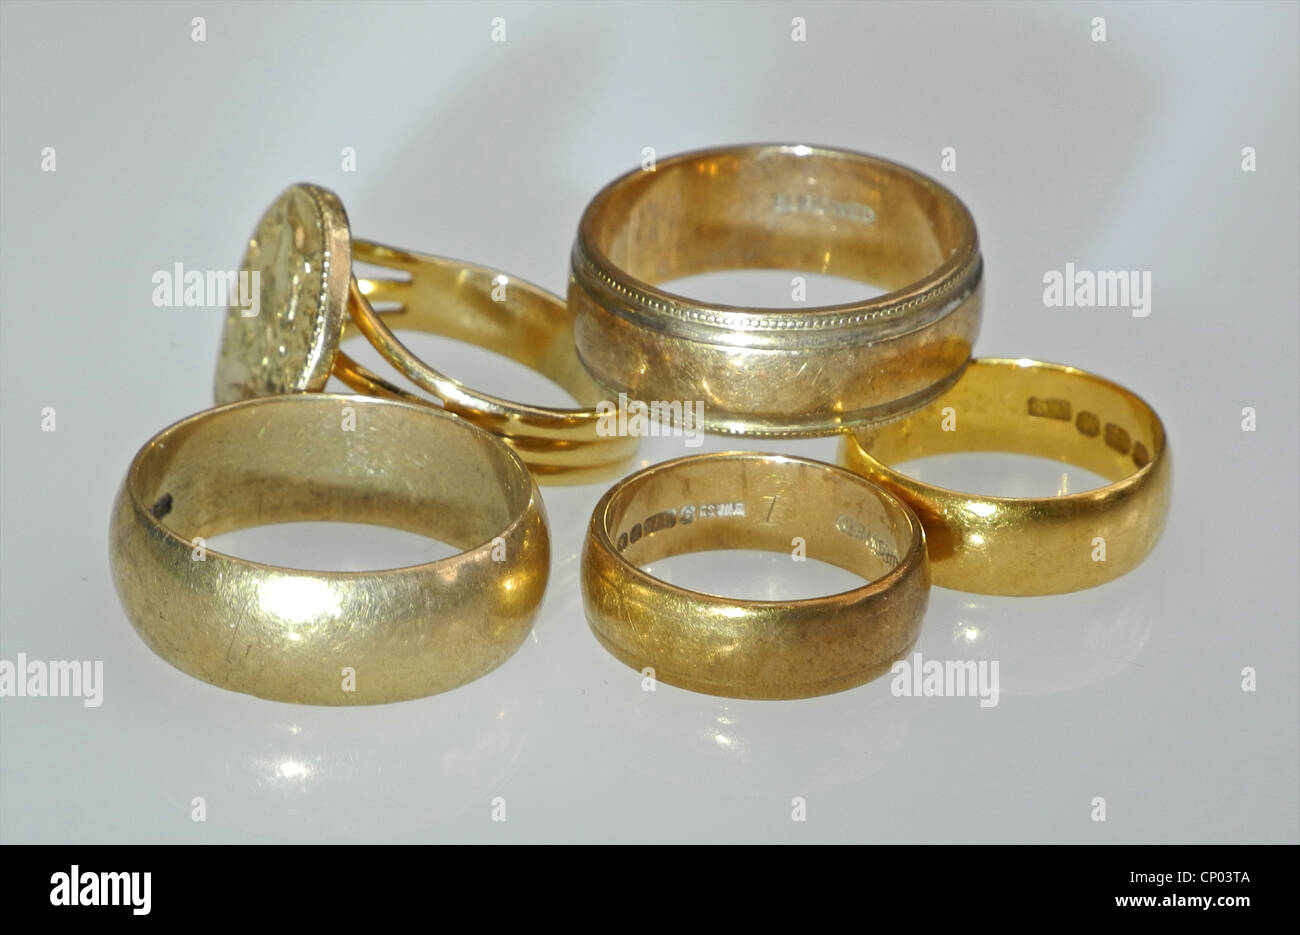 Five Gold rings - Stock Image